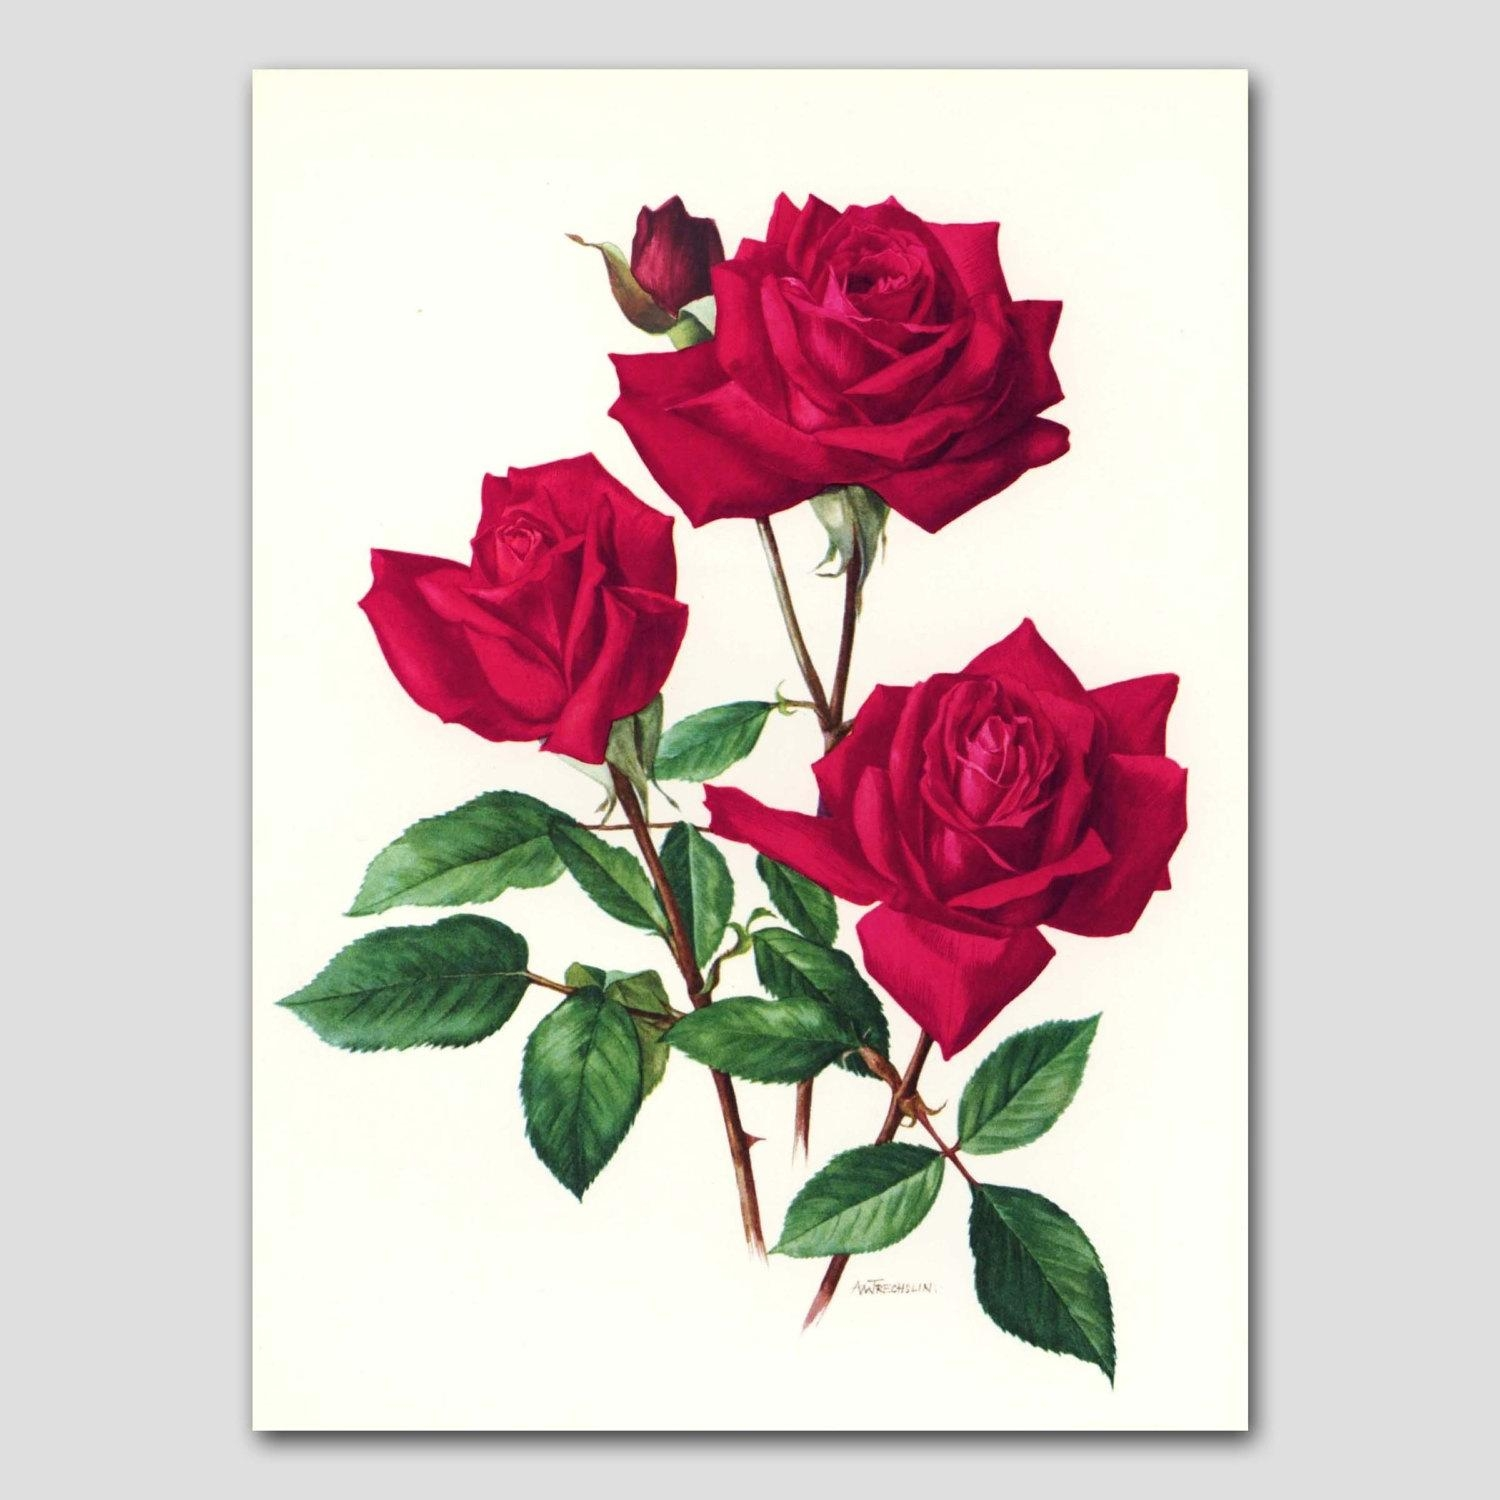 1960S Christian Dior Red Rose Art Vintage Paris With Regard To Red Rose Wall Art (Image 1 of 20)